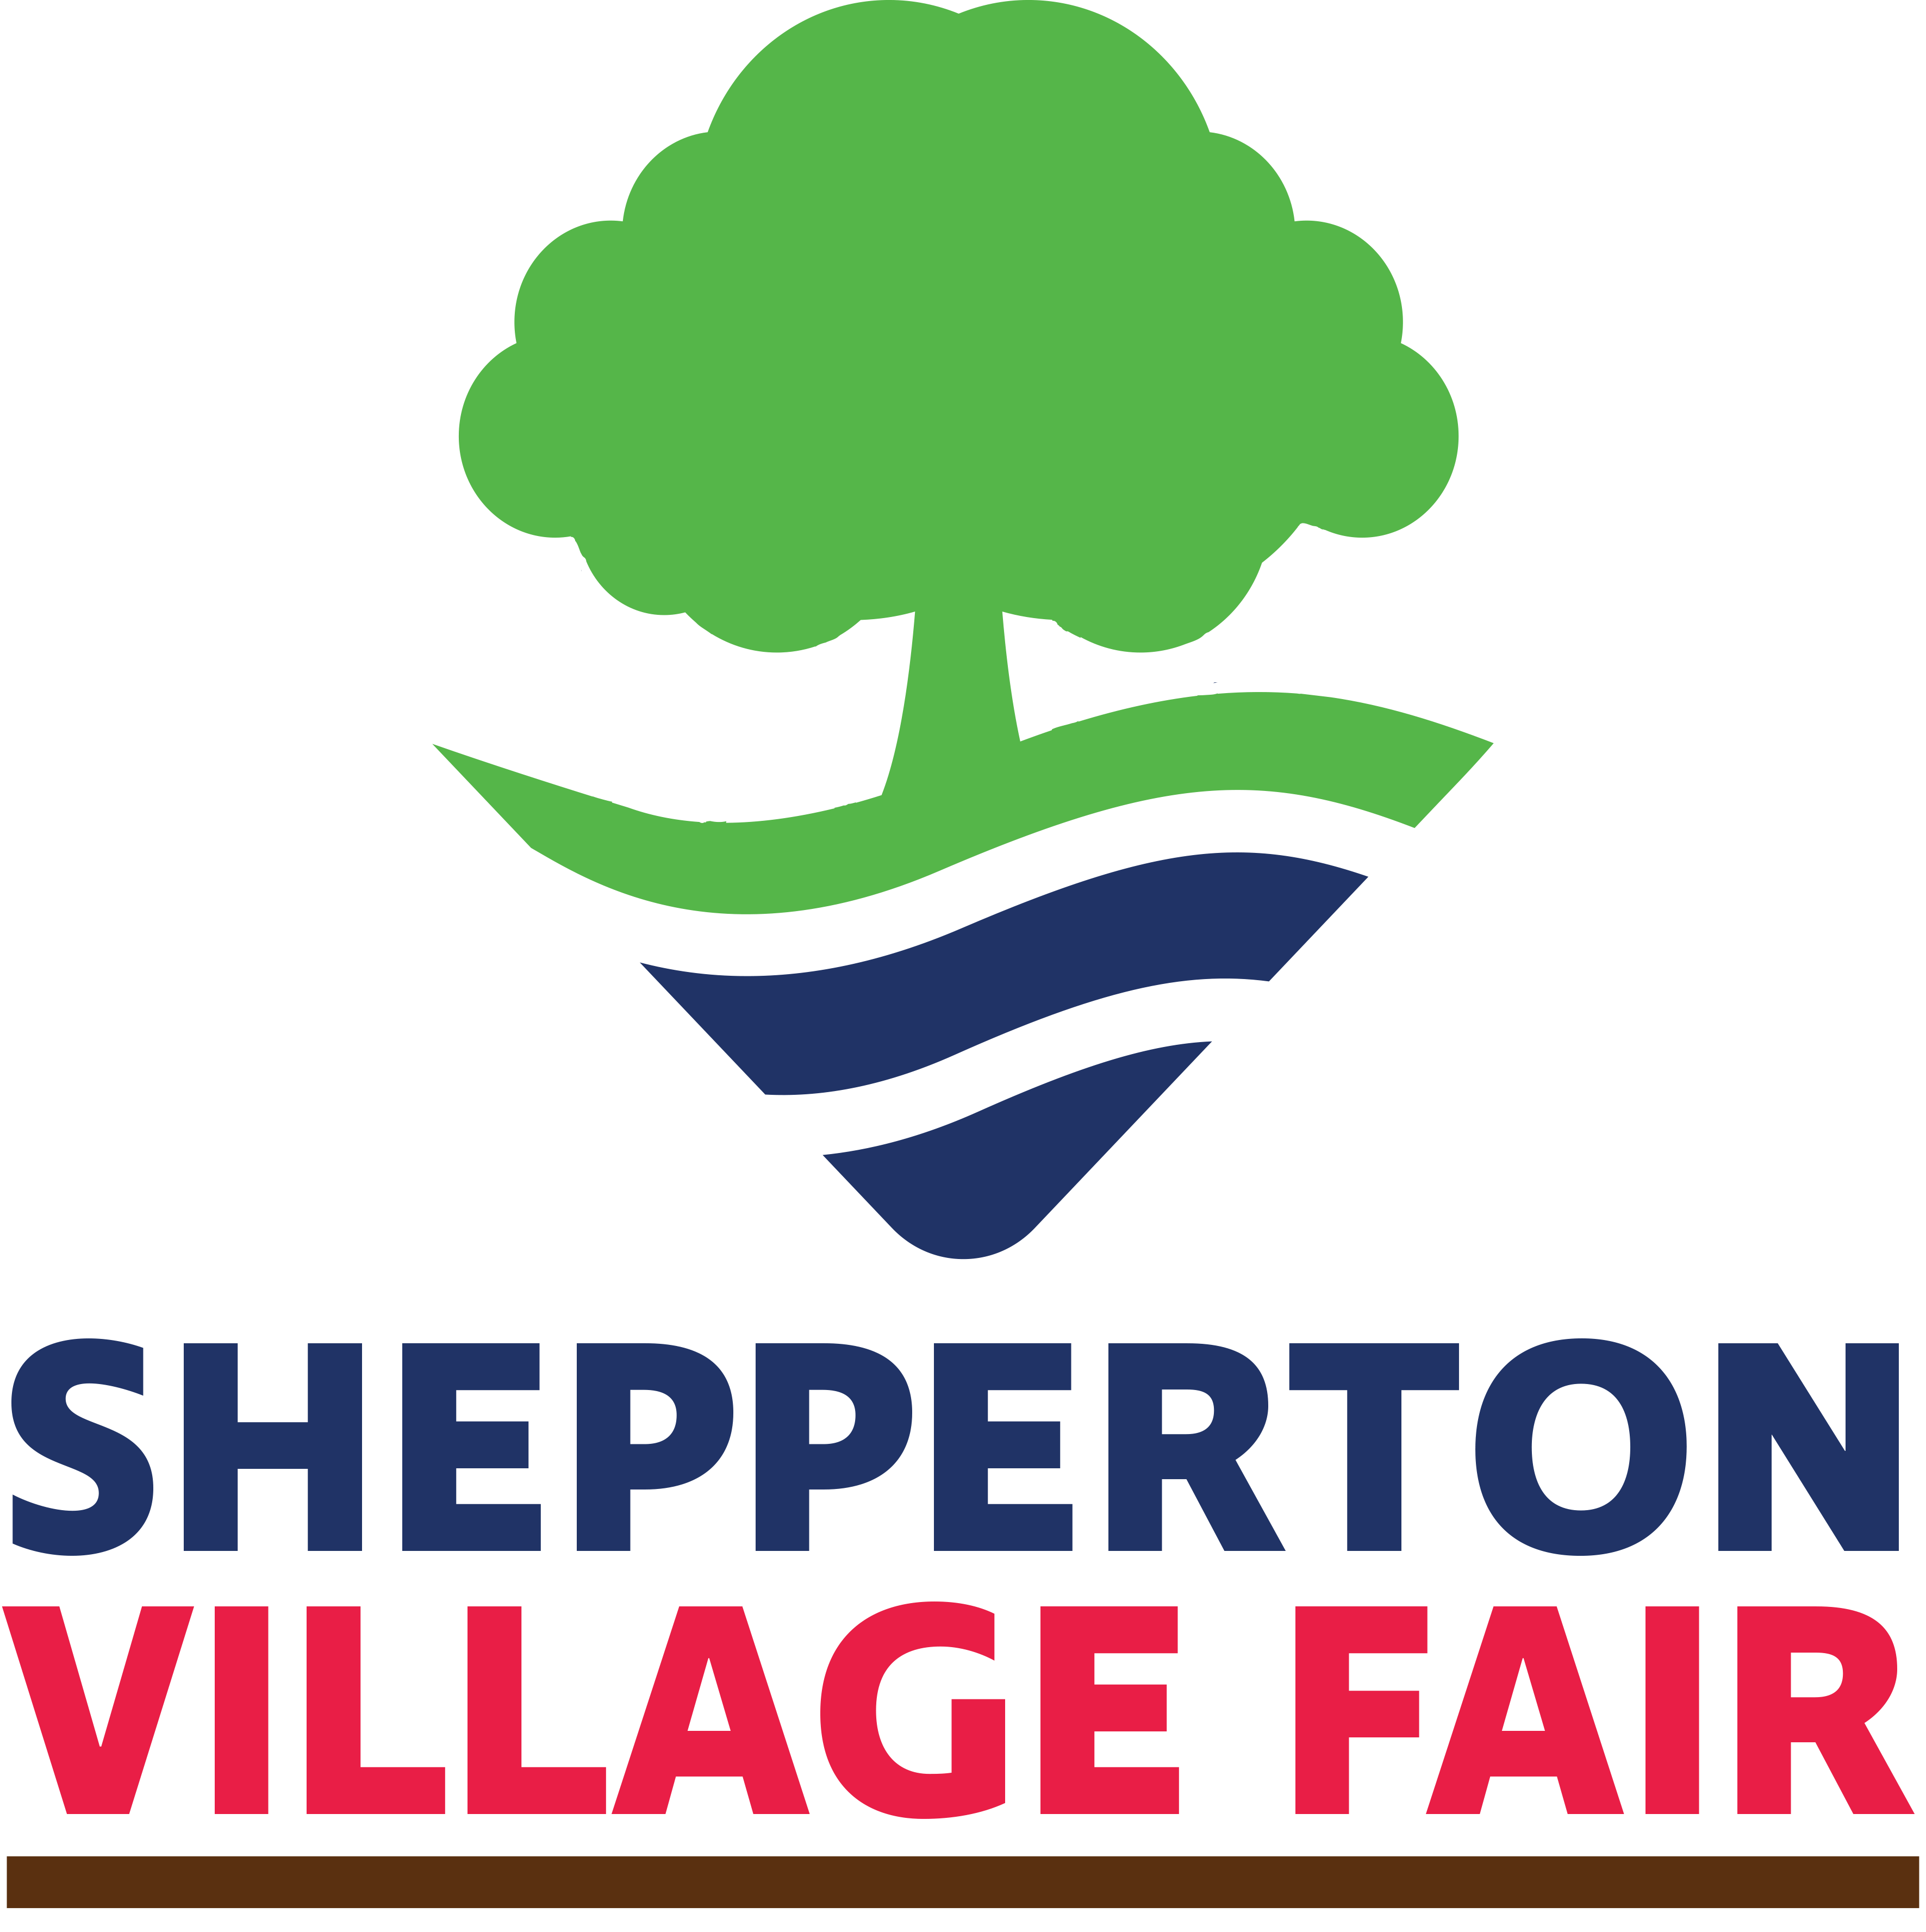 Shepperton Village Fair